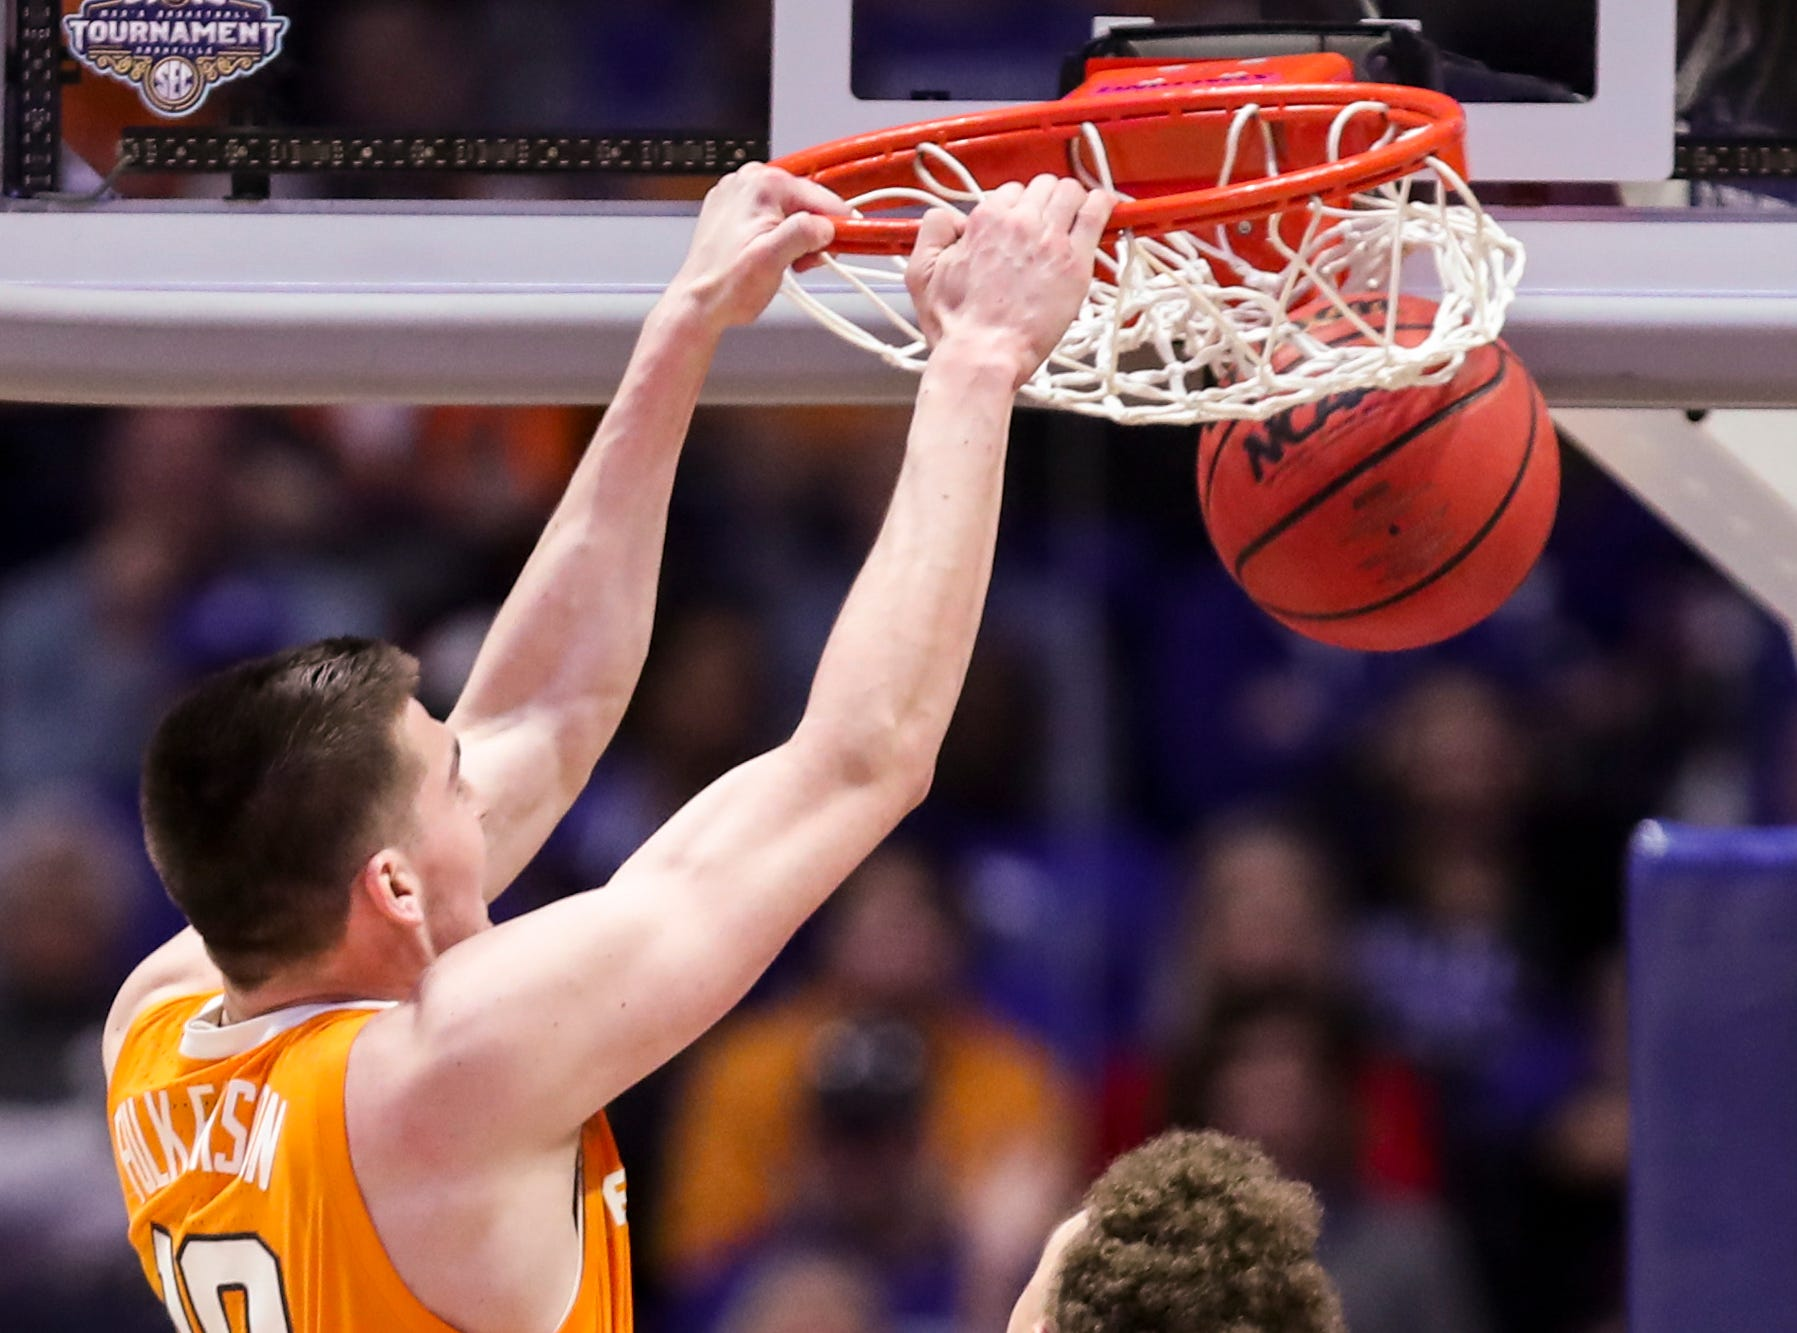 Tennessee forward John Fulkerson (10) dunks over Kentucky forward Reid Travis (22) during the second half of the SEC Men's Basketball Tournament semifinal game at Bridgestone Arena in Nashville, Tenn., Saturday, March 16, 2019.